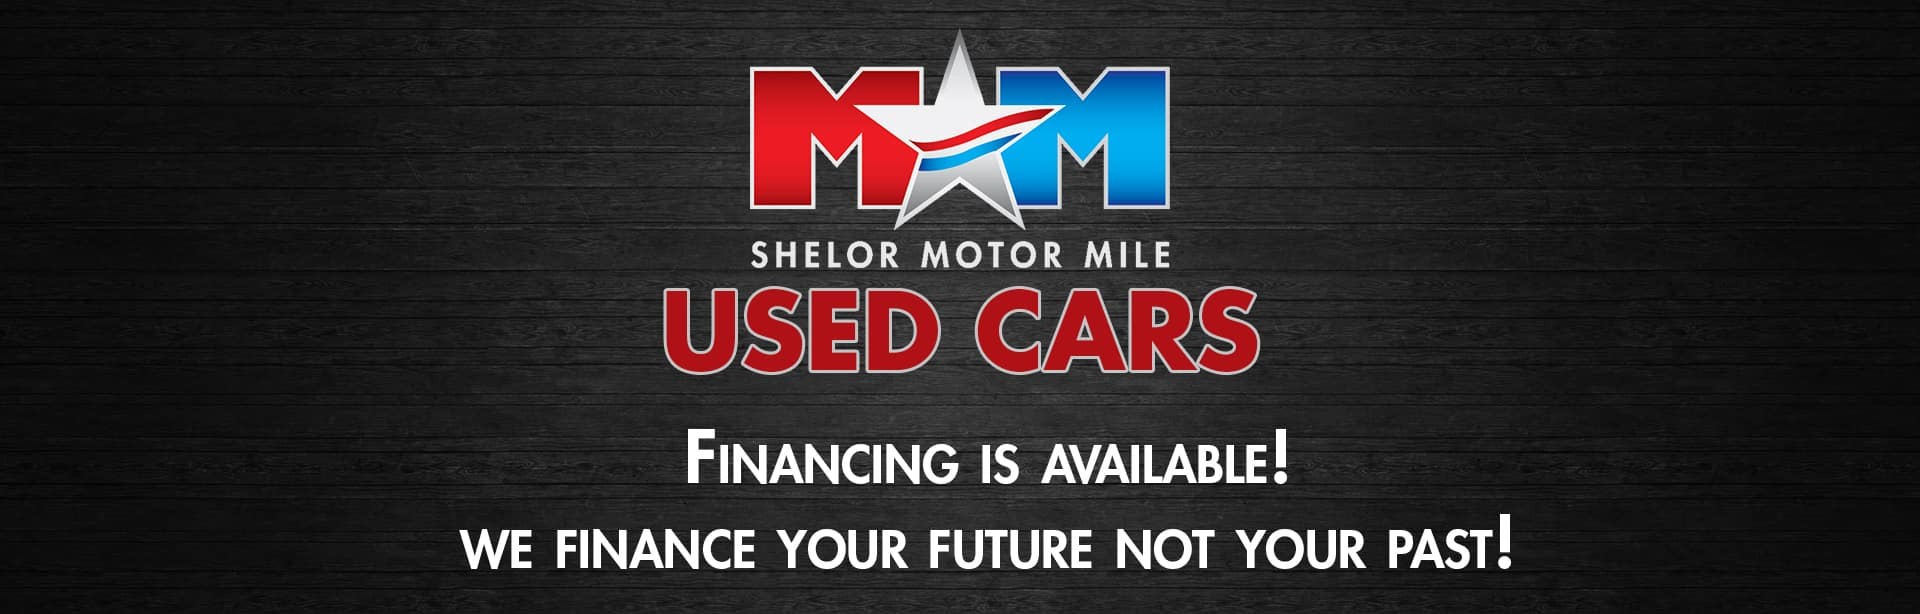 Shelor toyota auto dealer and service center in for Cars financial shelor motor mile